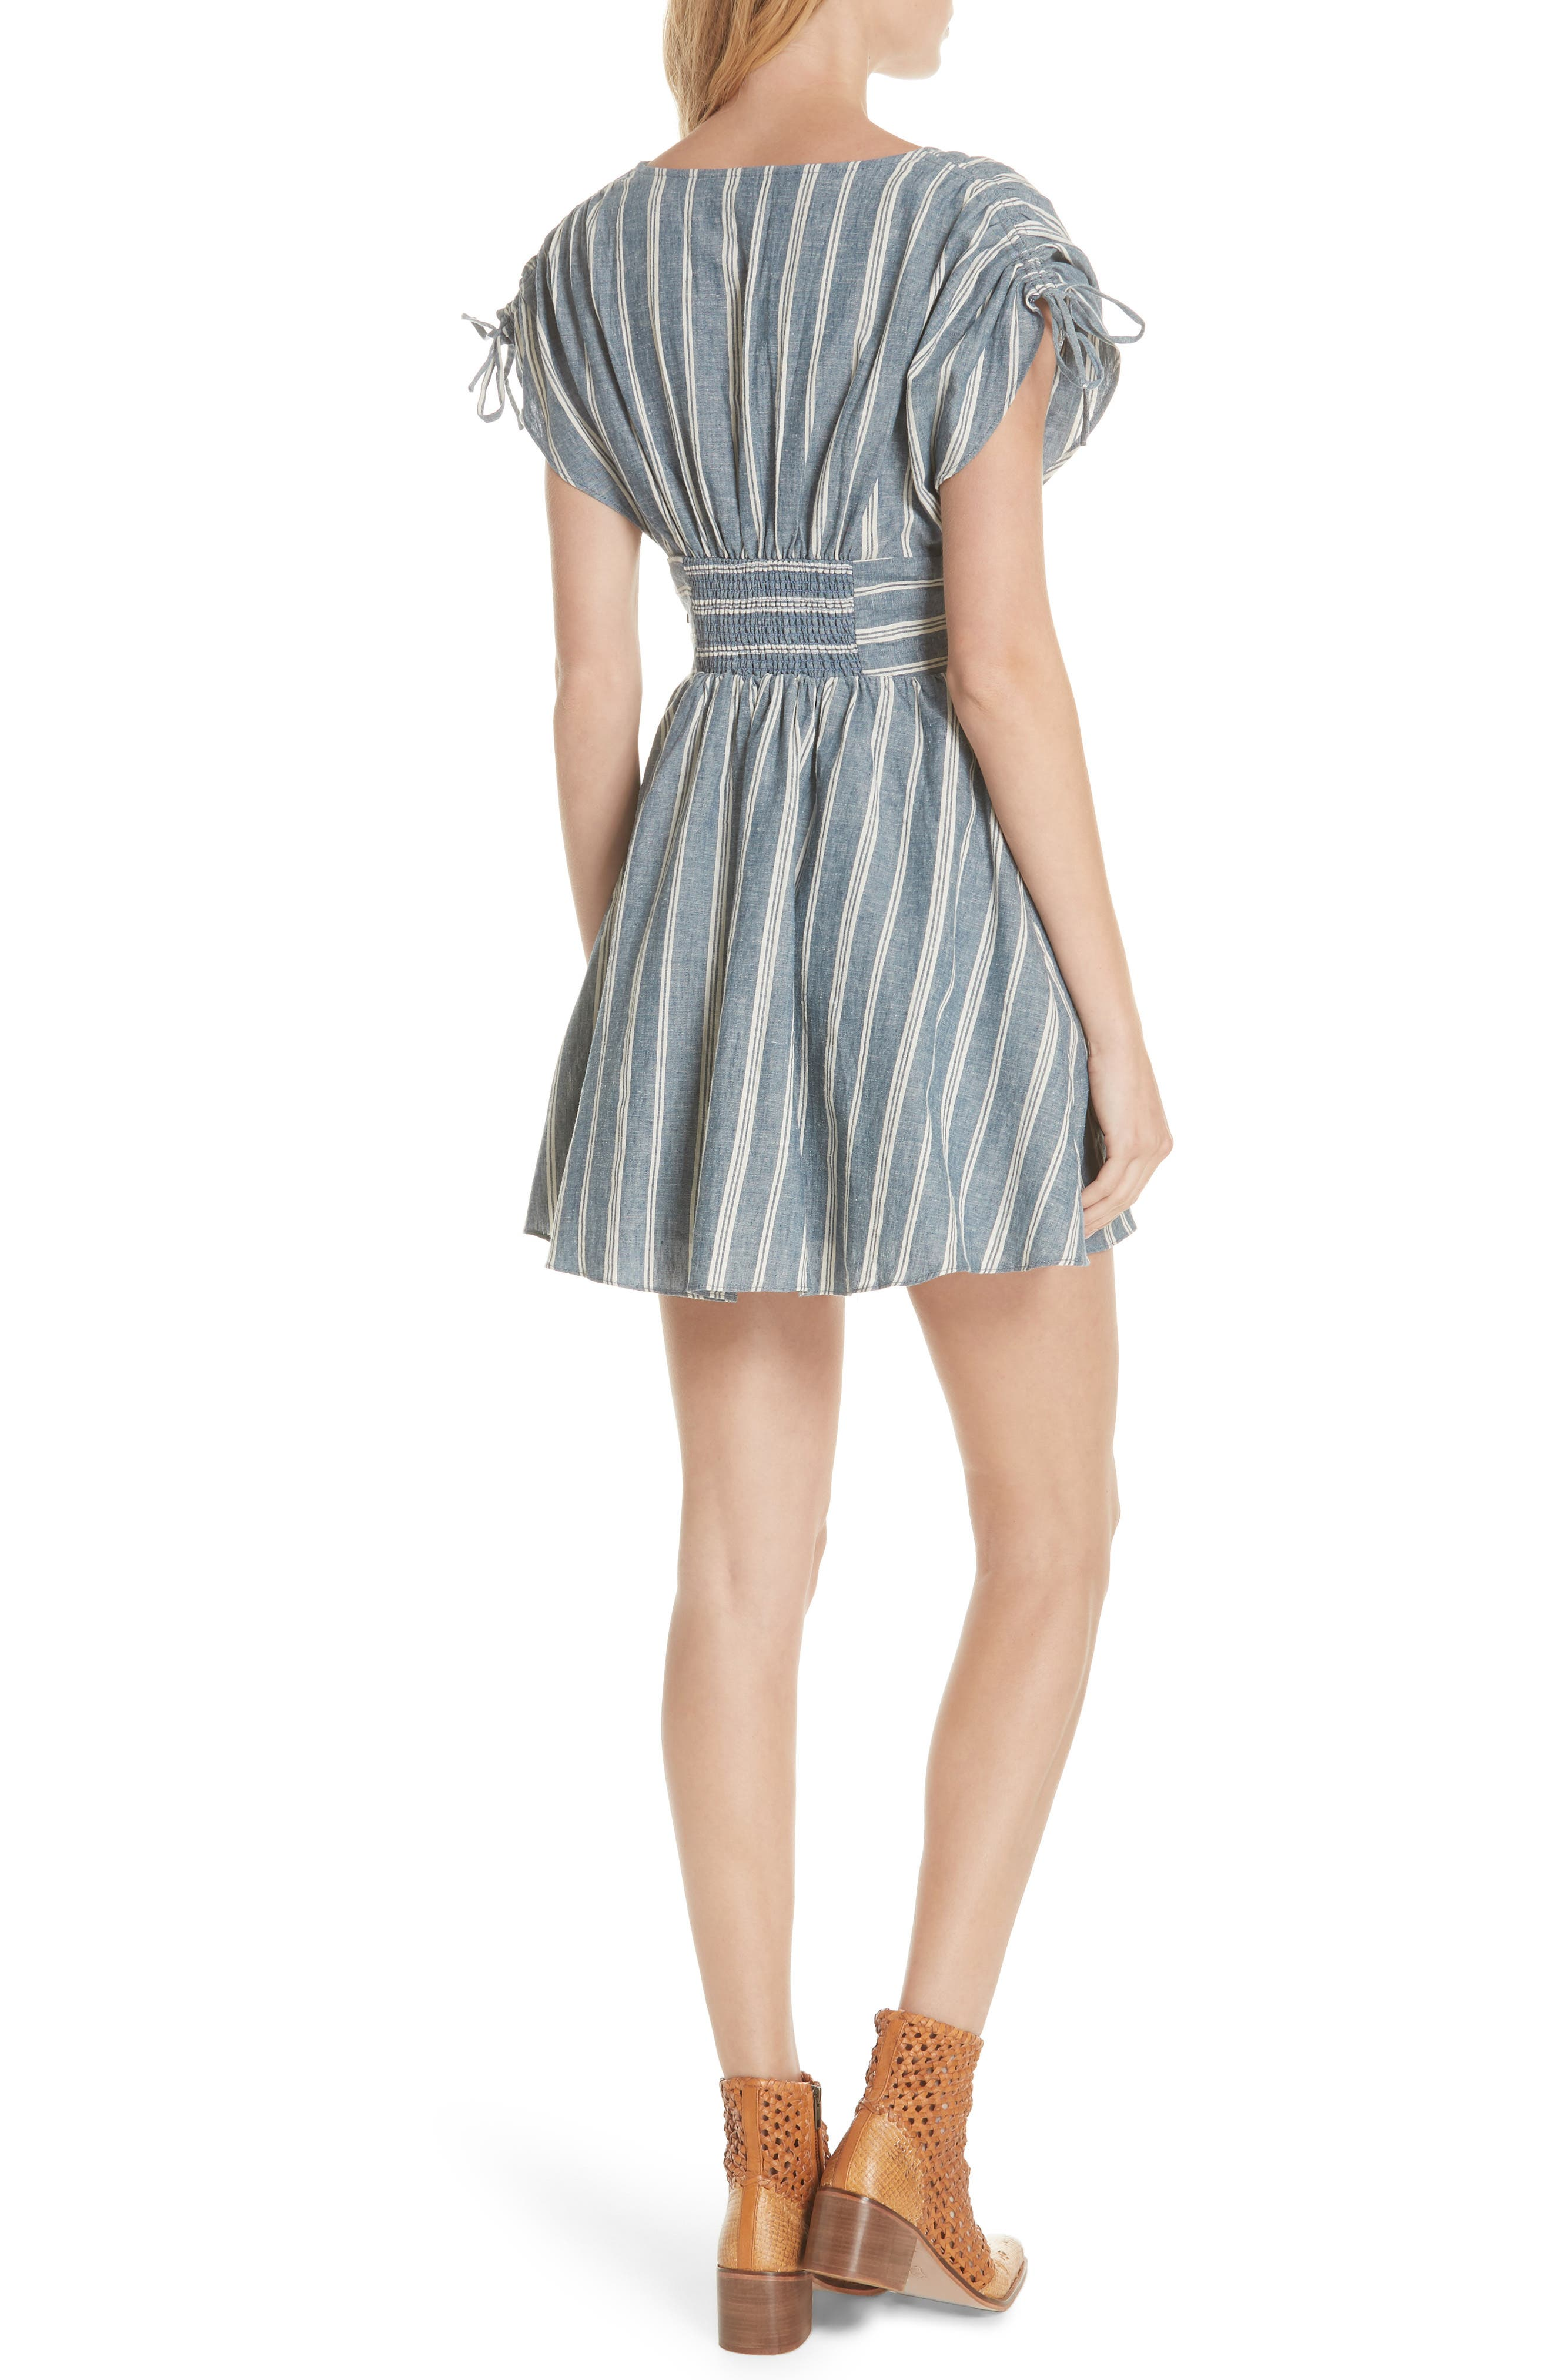 FREE PEOPLE,                             Roll the Dice Stripe Dress,                             Alternate thumbnail 2, color,                             400